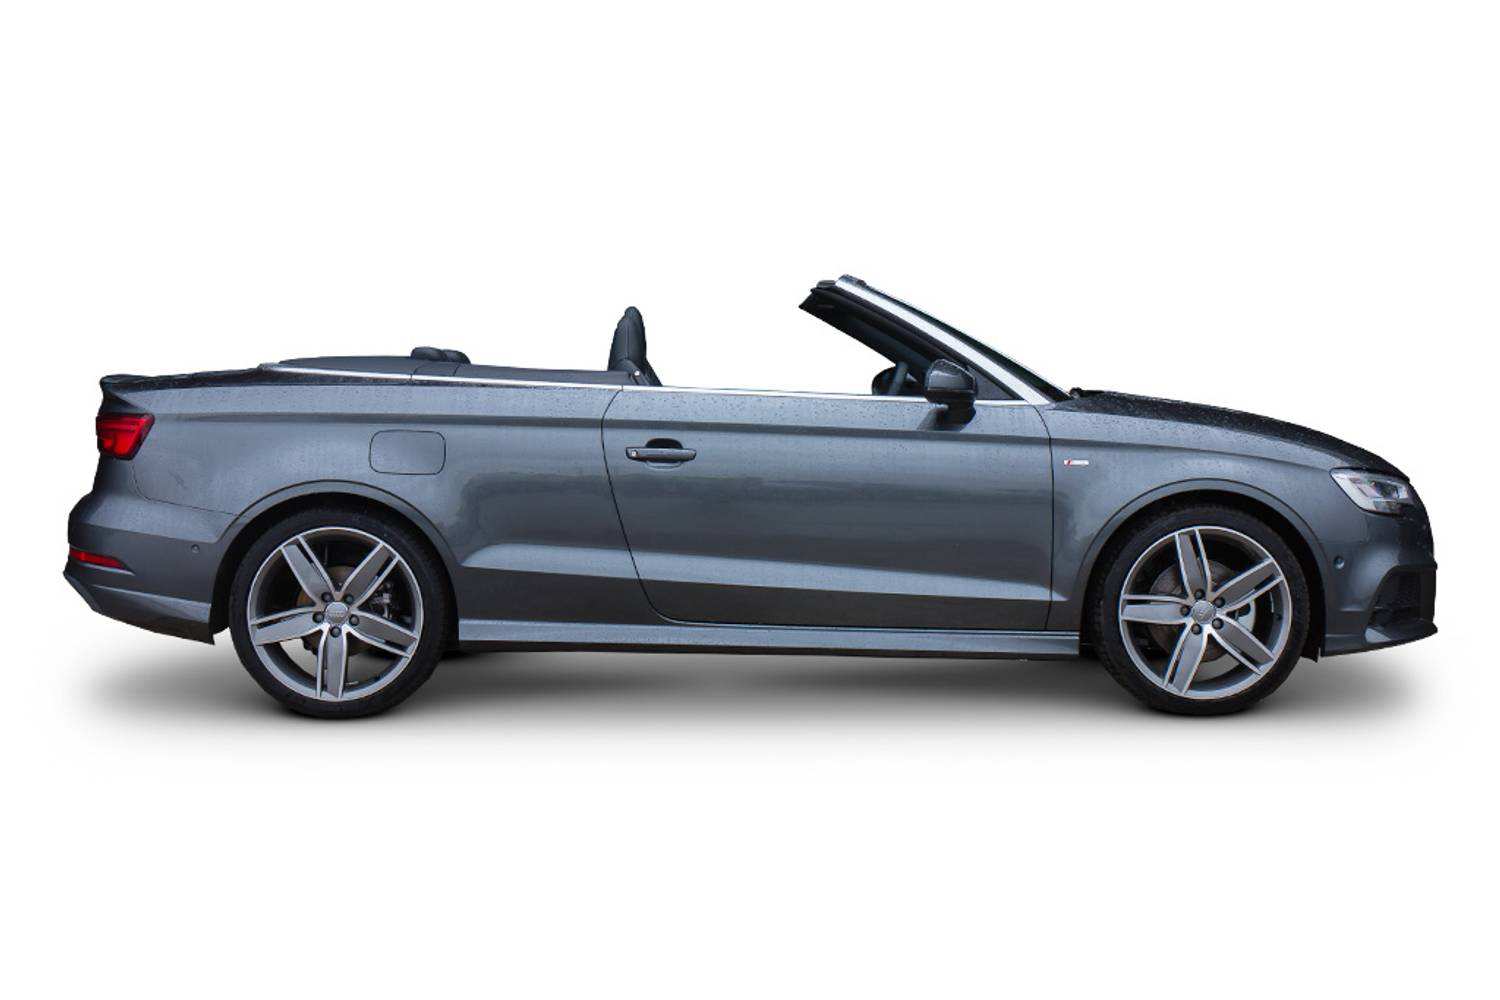 new audi a3 diesel cabriolet 1.6 tdi (116 ps) se 2-door (2017